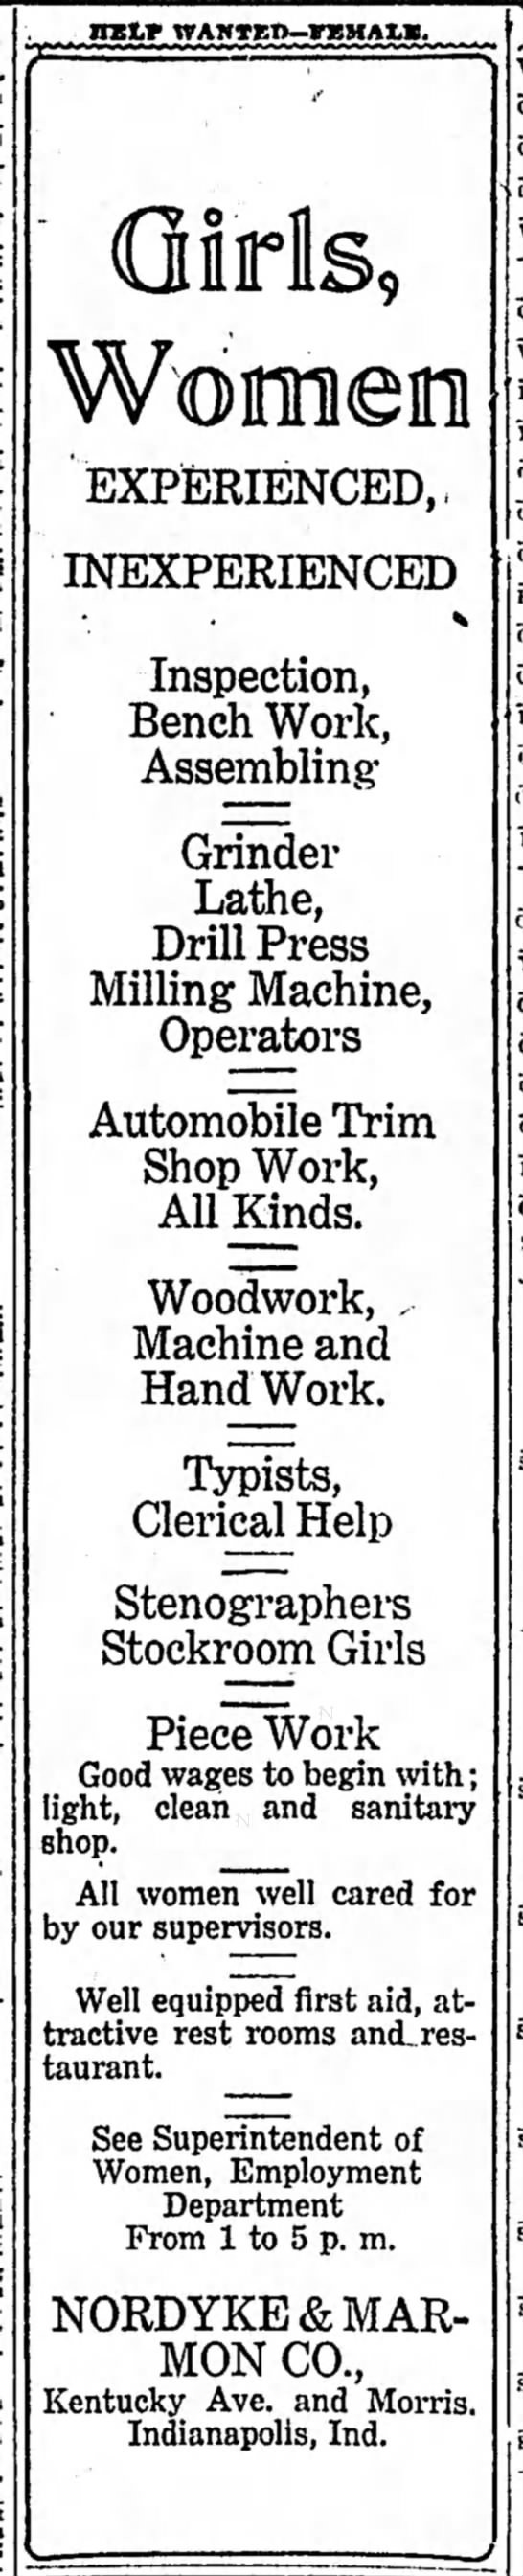 The Indianapolis Star, 24 October 1919, p. 21.